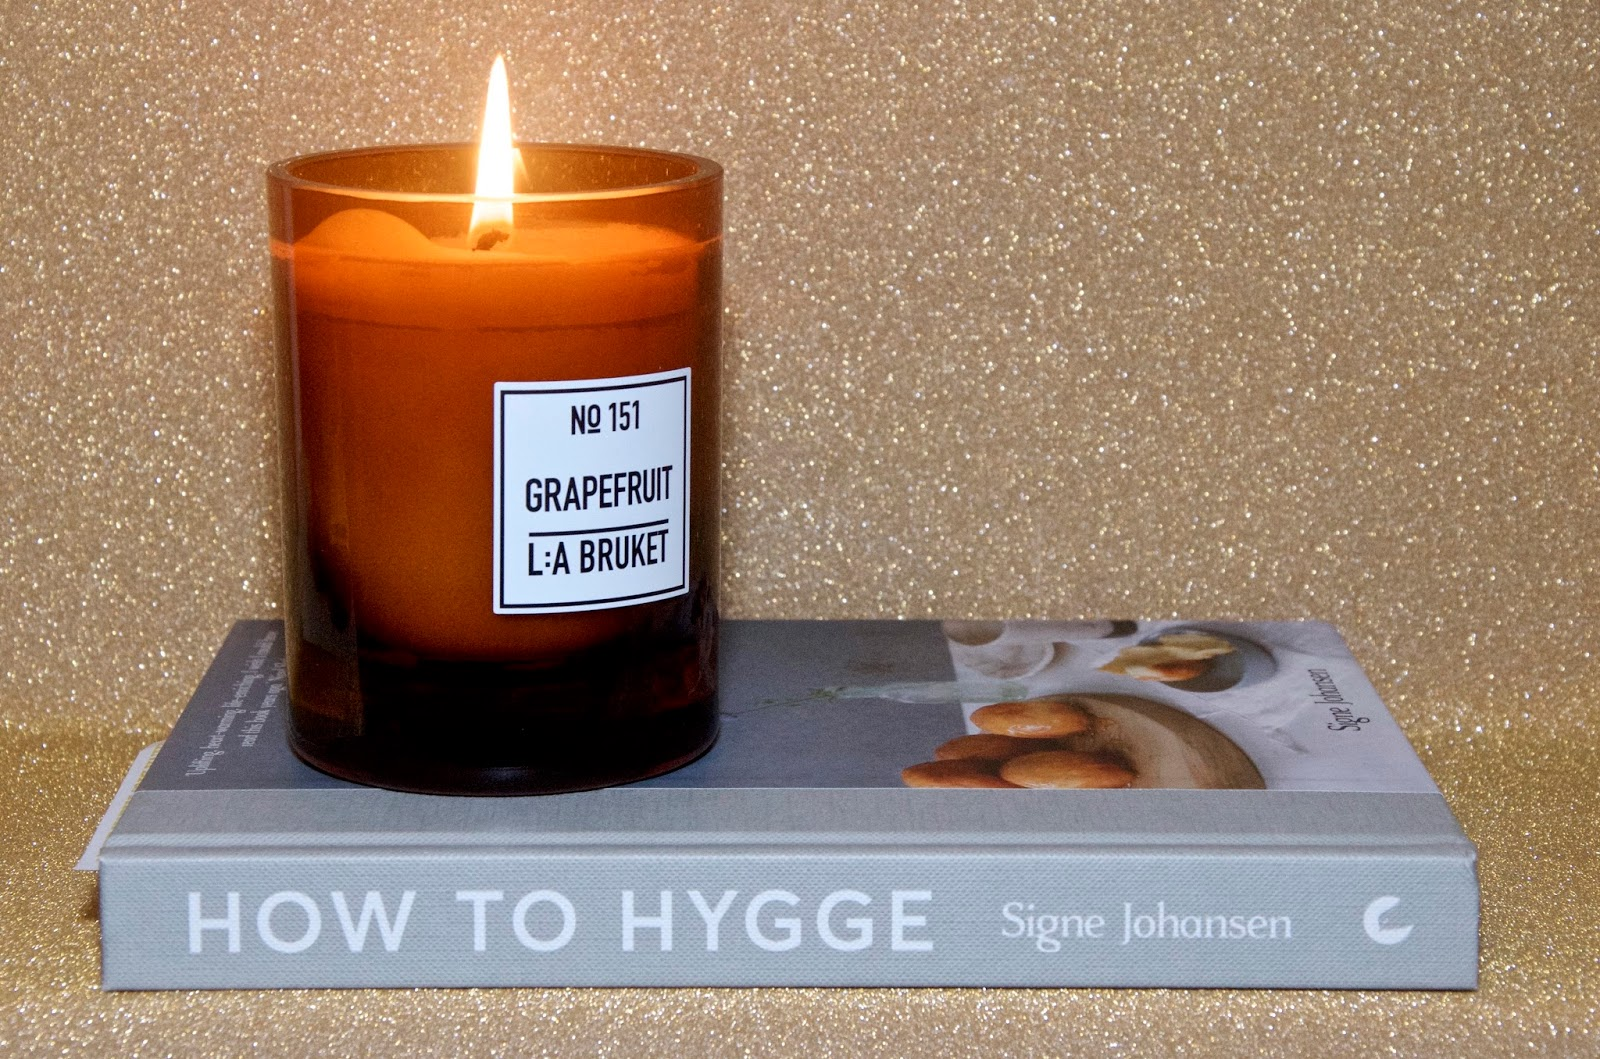 brown glass candle and hygge book